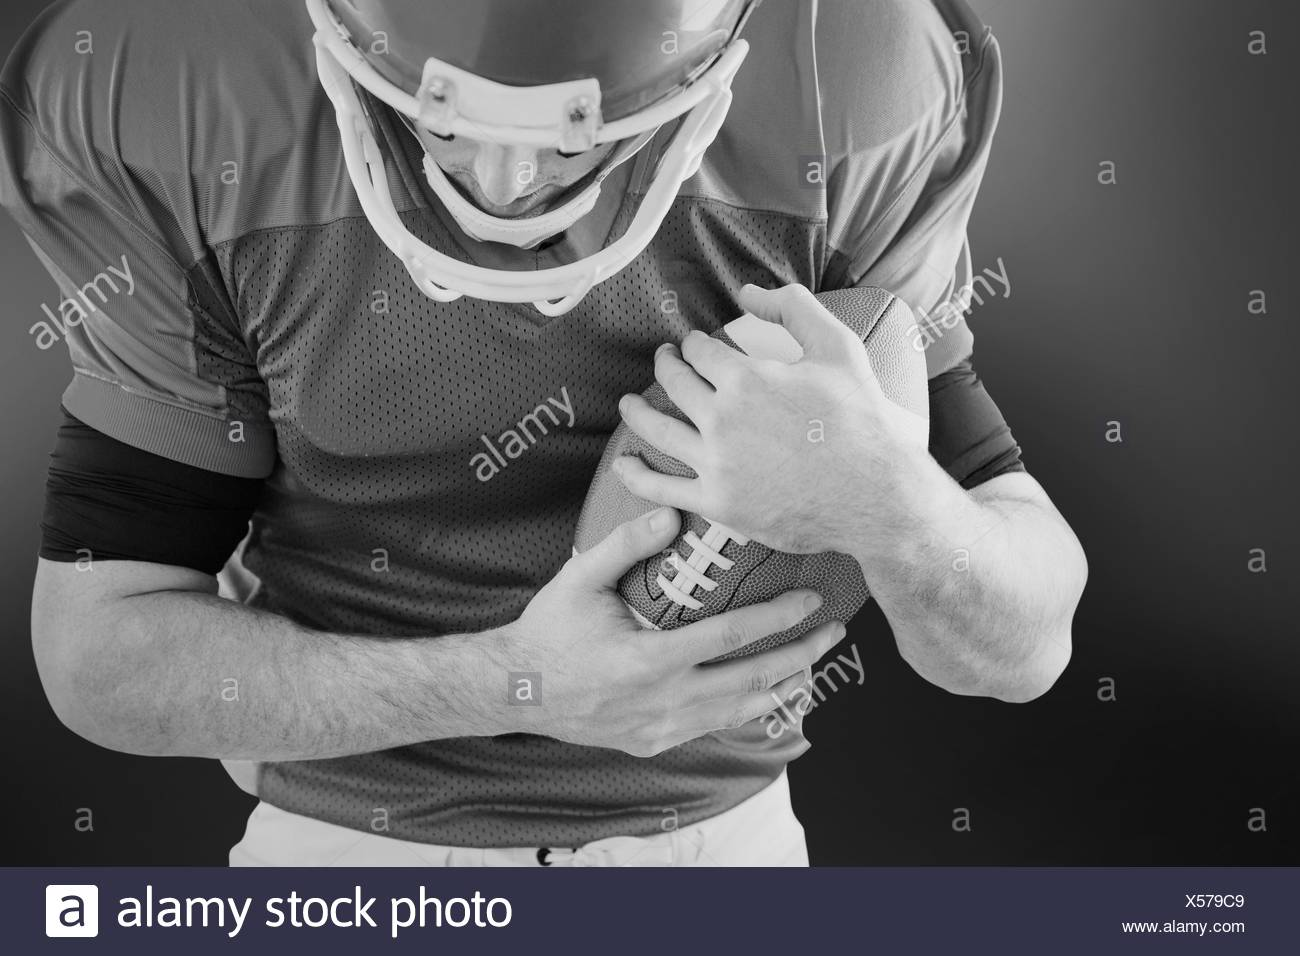 American football player protecting football - Stock Image